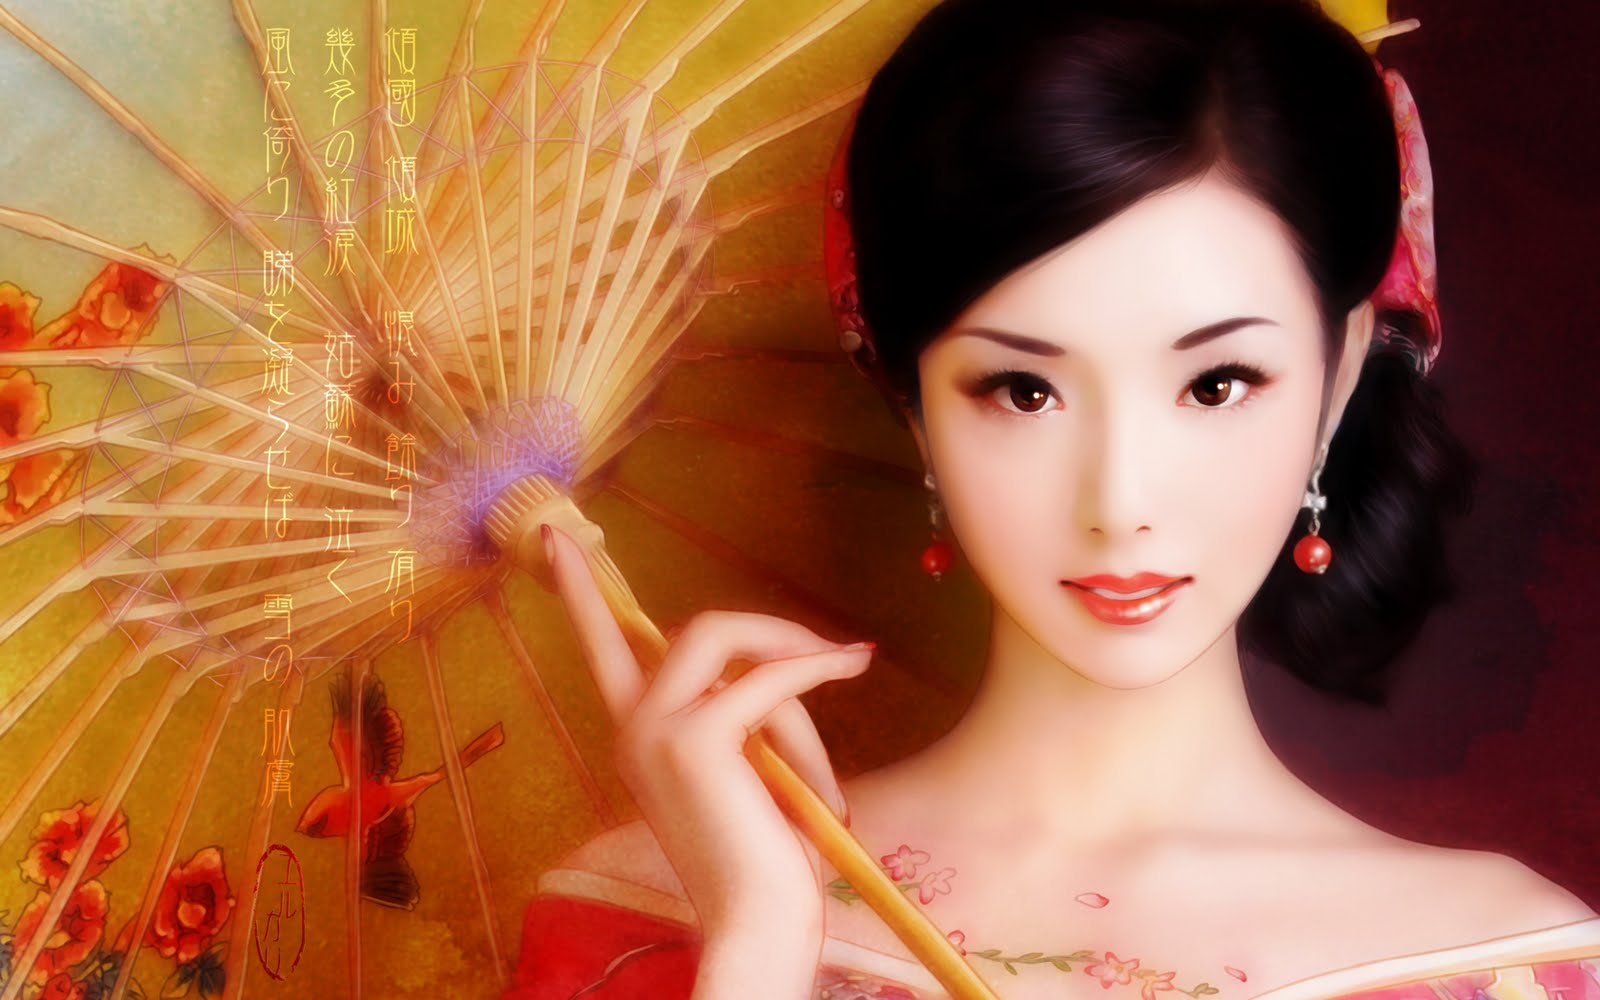 http://3.bp.blogspot.com/-h03uS06ZFl0/TaXIAnHhFDI/AAAAAAAAAiE/Gcu_qOG1aJM/s1600/Beautiful+Japanese+Girl+wearing+kimono+desktop+Wallpaper+background+for+you.jpg